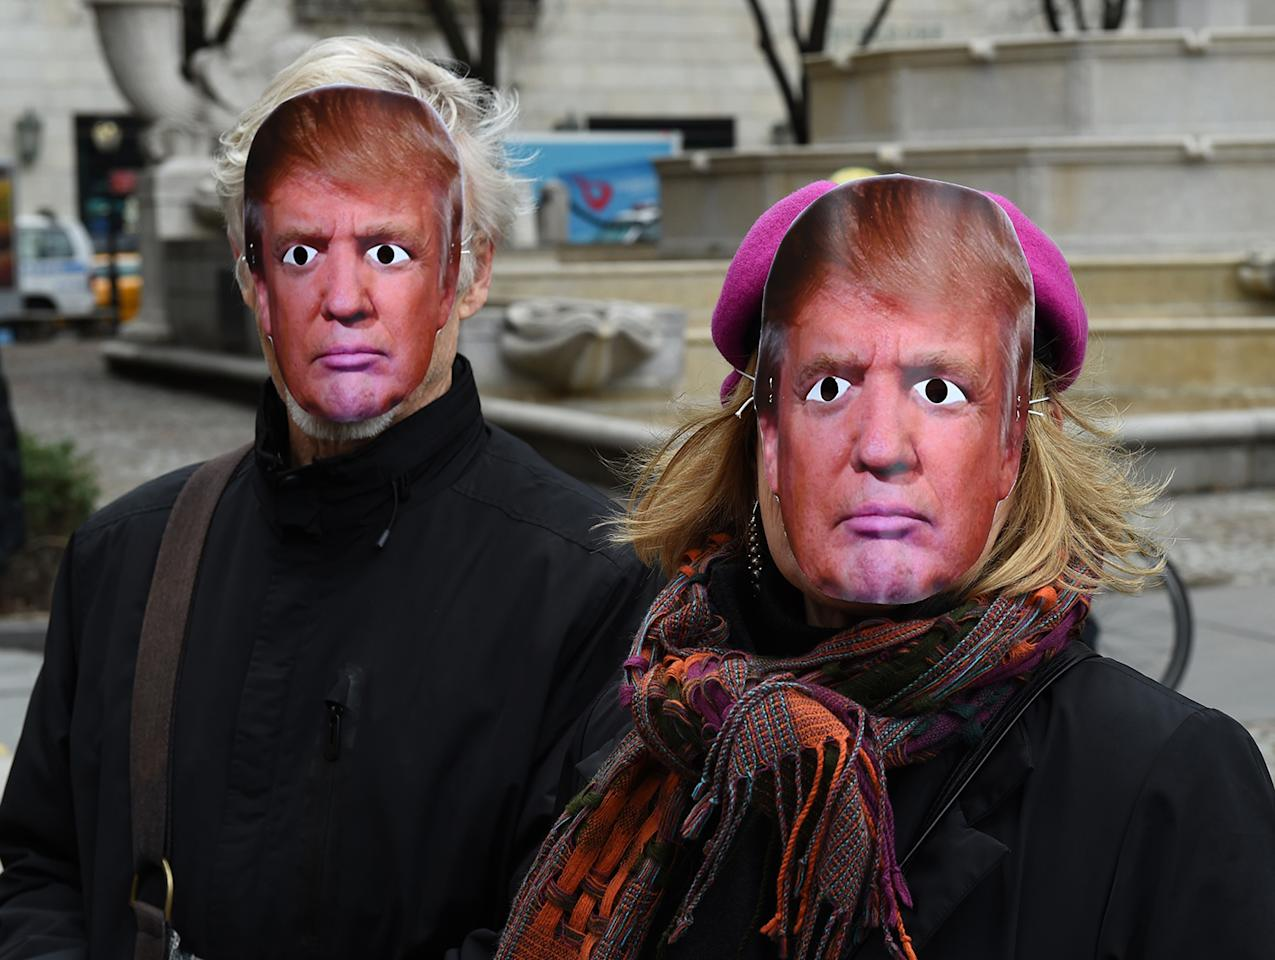 <p>People wearing masks of U.S. President Donald Trump take part in the 32nd Annual April Fools Day Parade in New York on April 1, 2017. (Photo: Timothy A. Clary/AFP/Getty Images) </p>